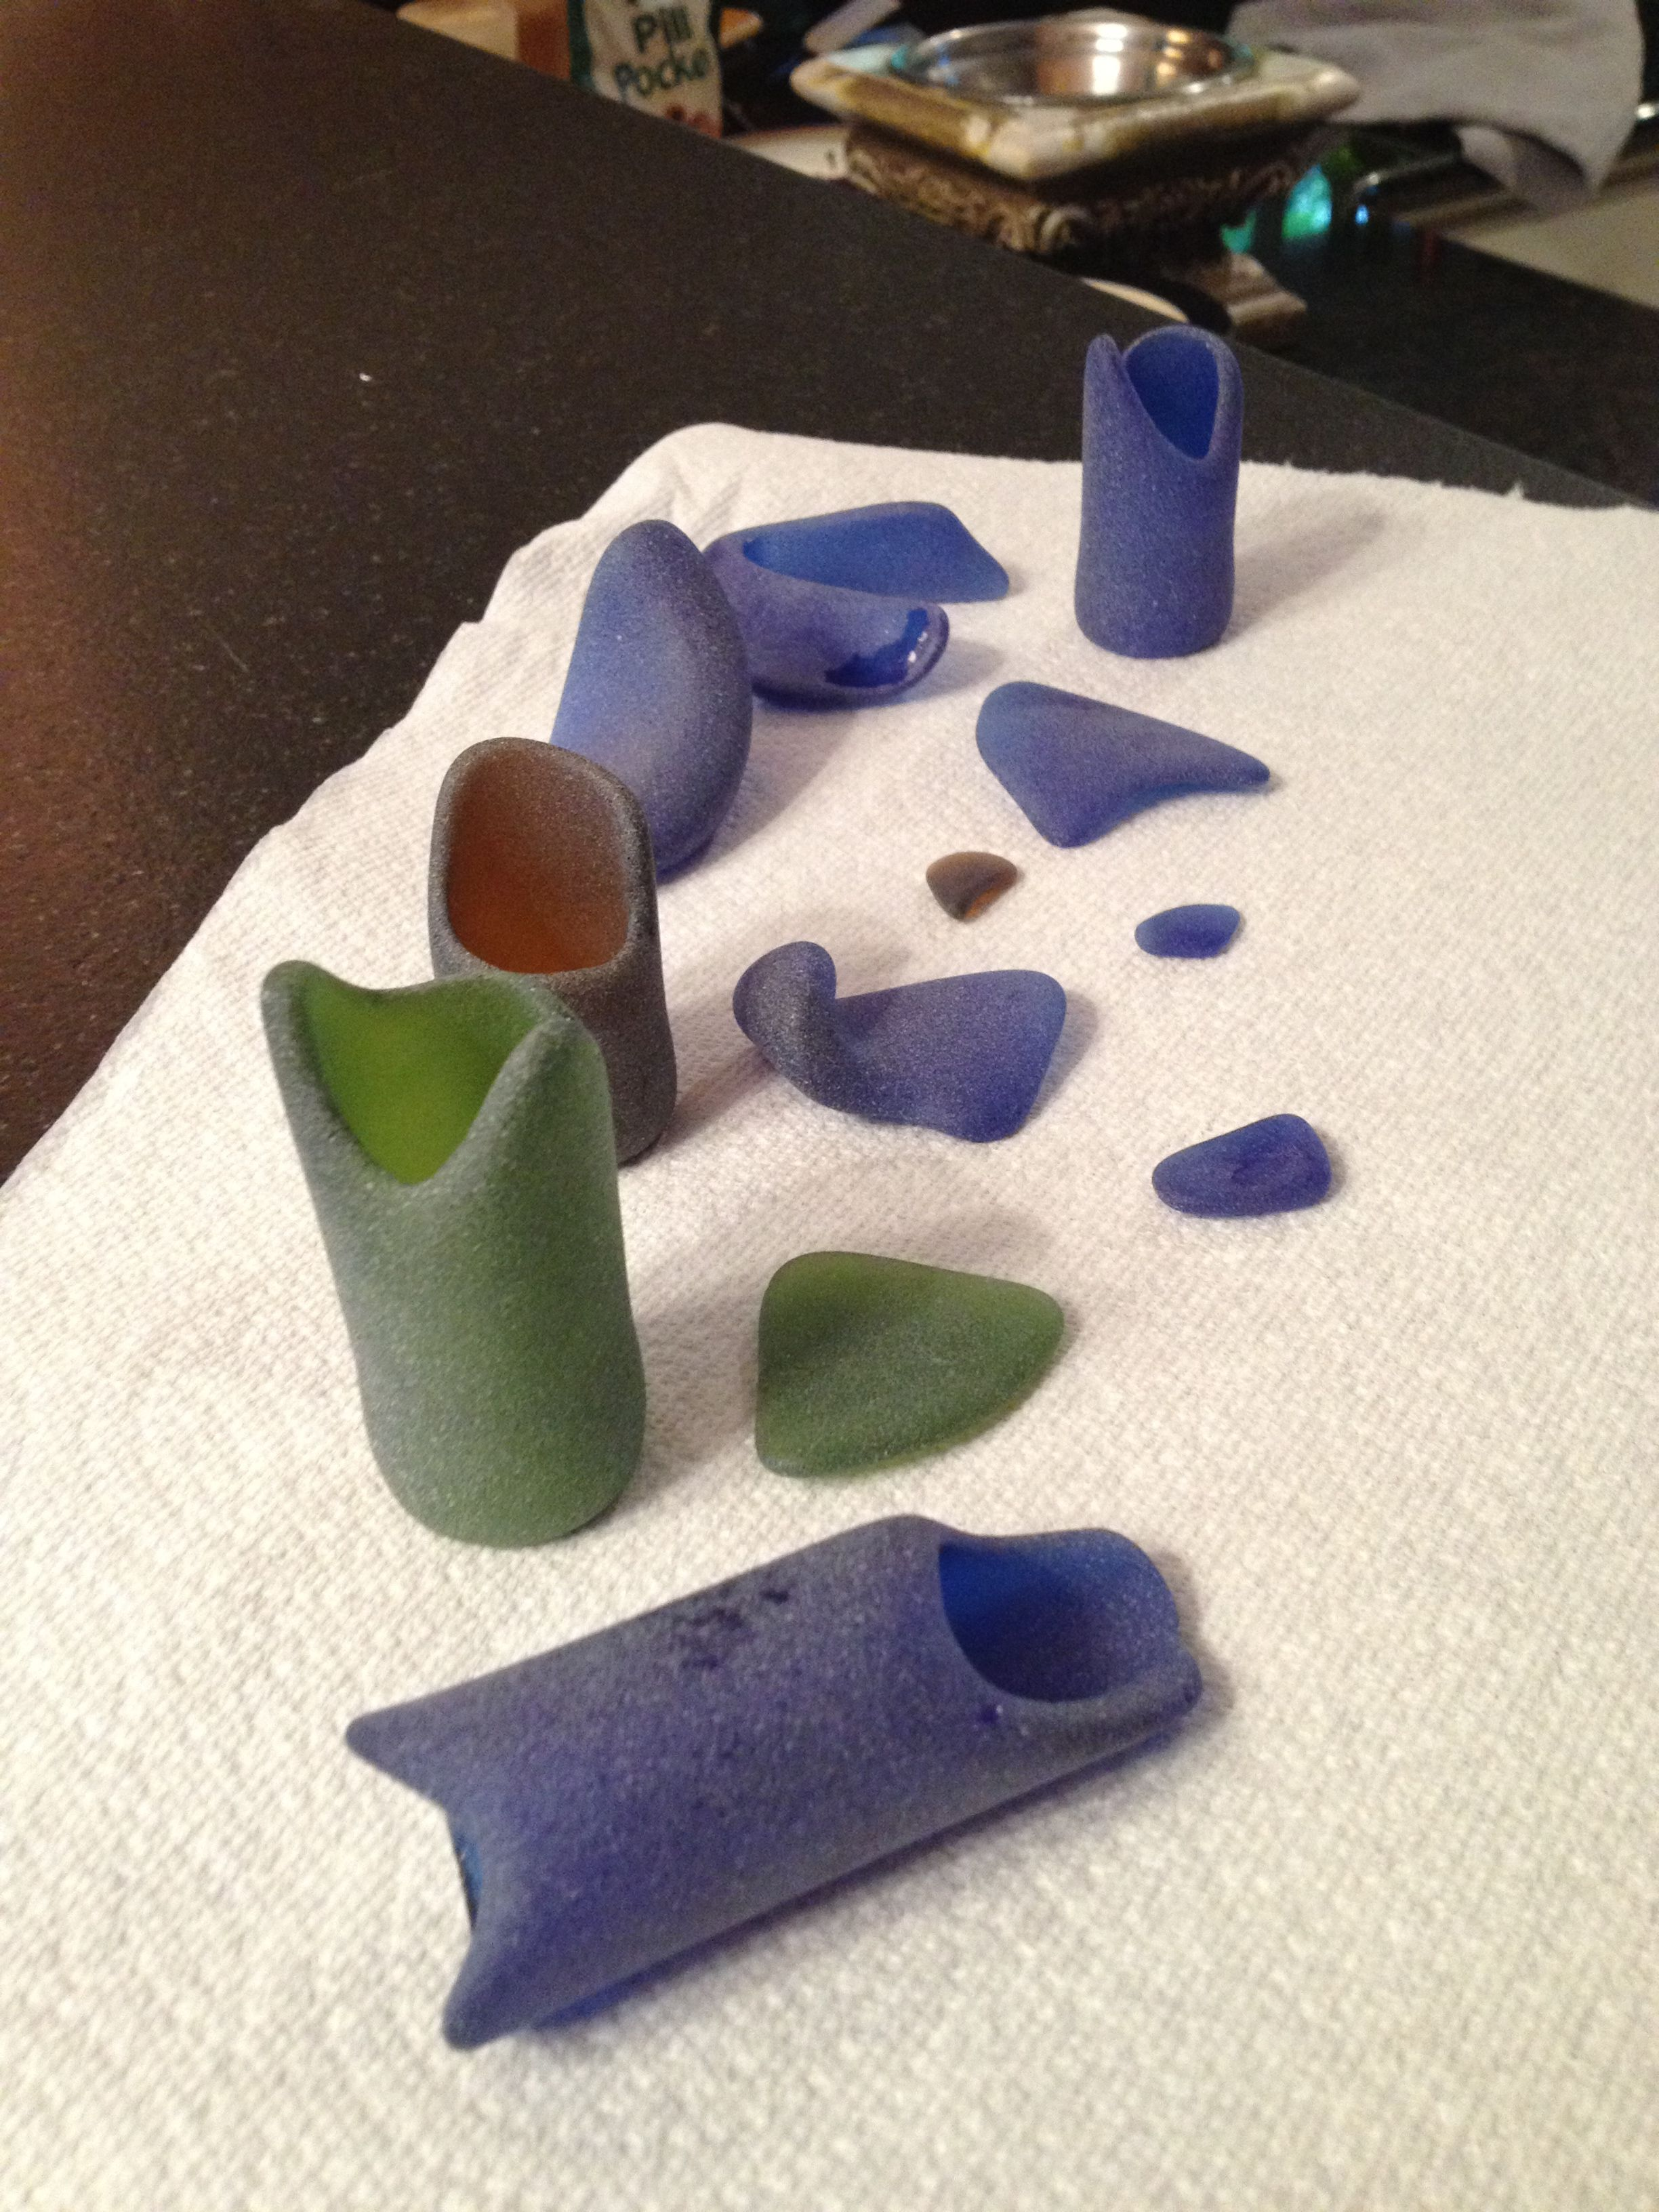 Got A Rock Tumbler Ed Some Wine Bottles Empty Of Course And Tumbled Love The Effect